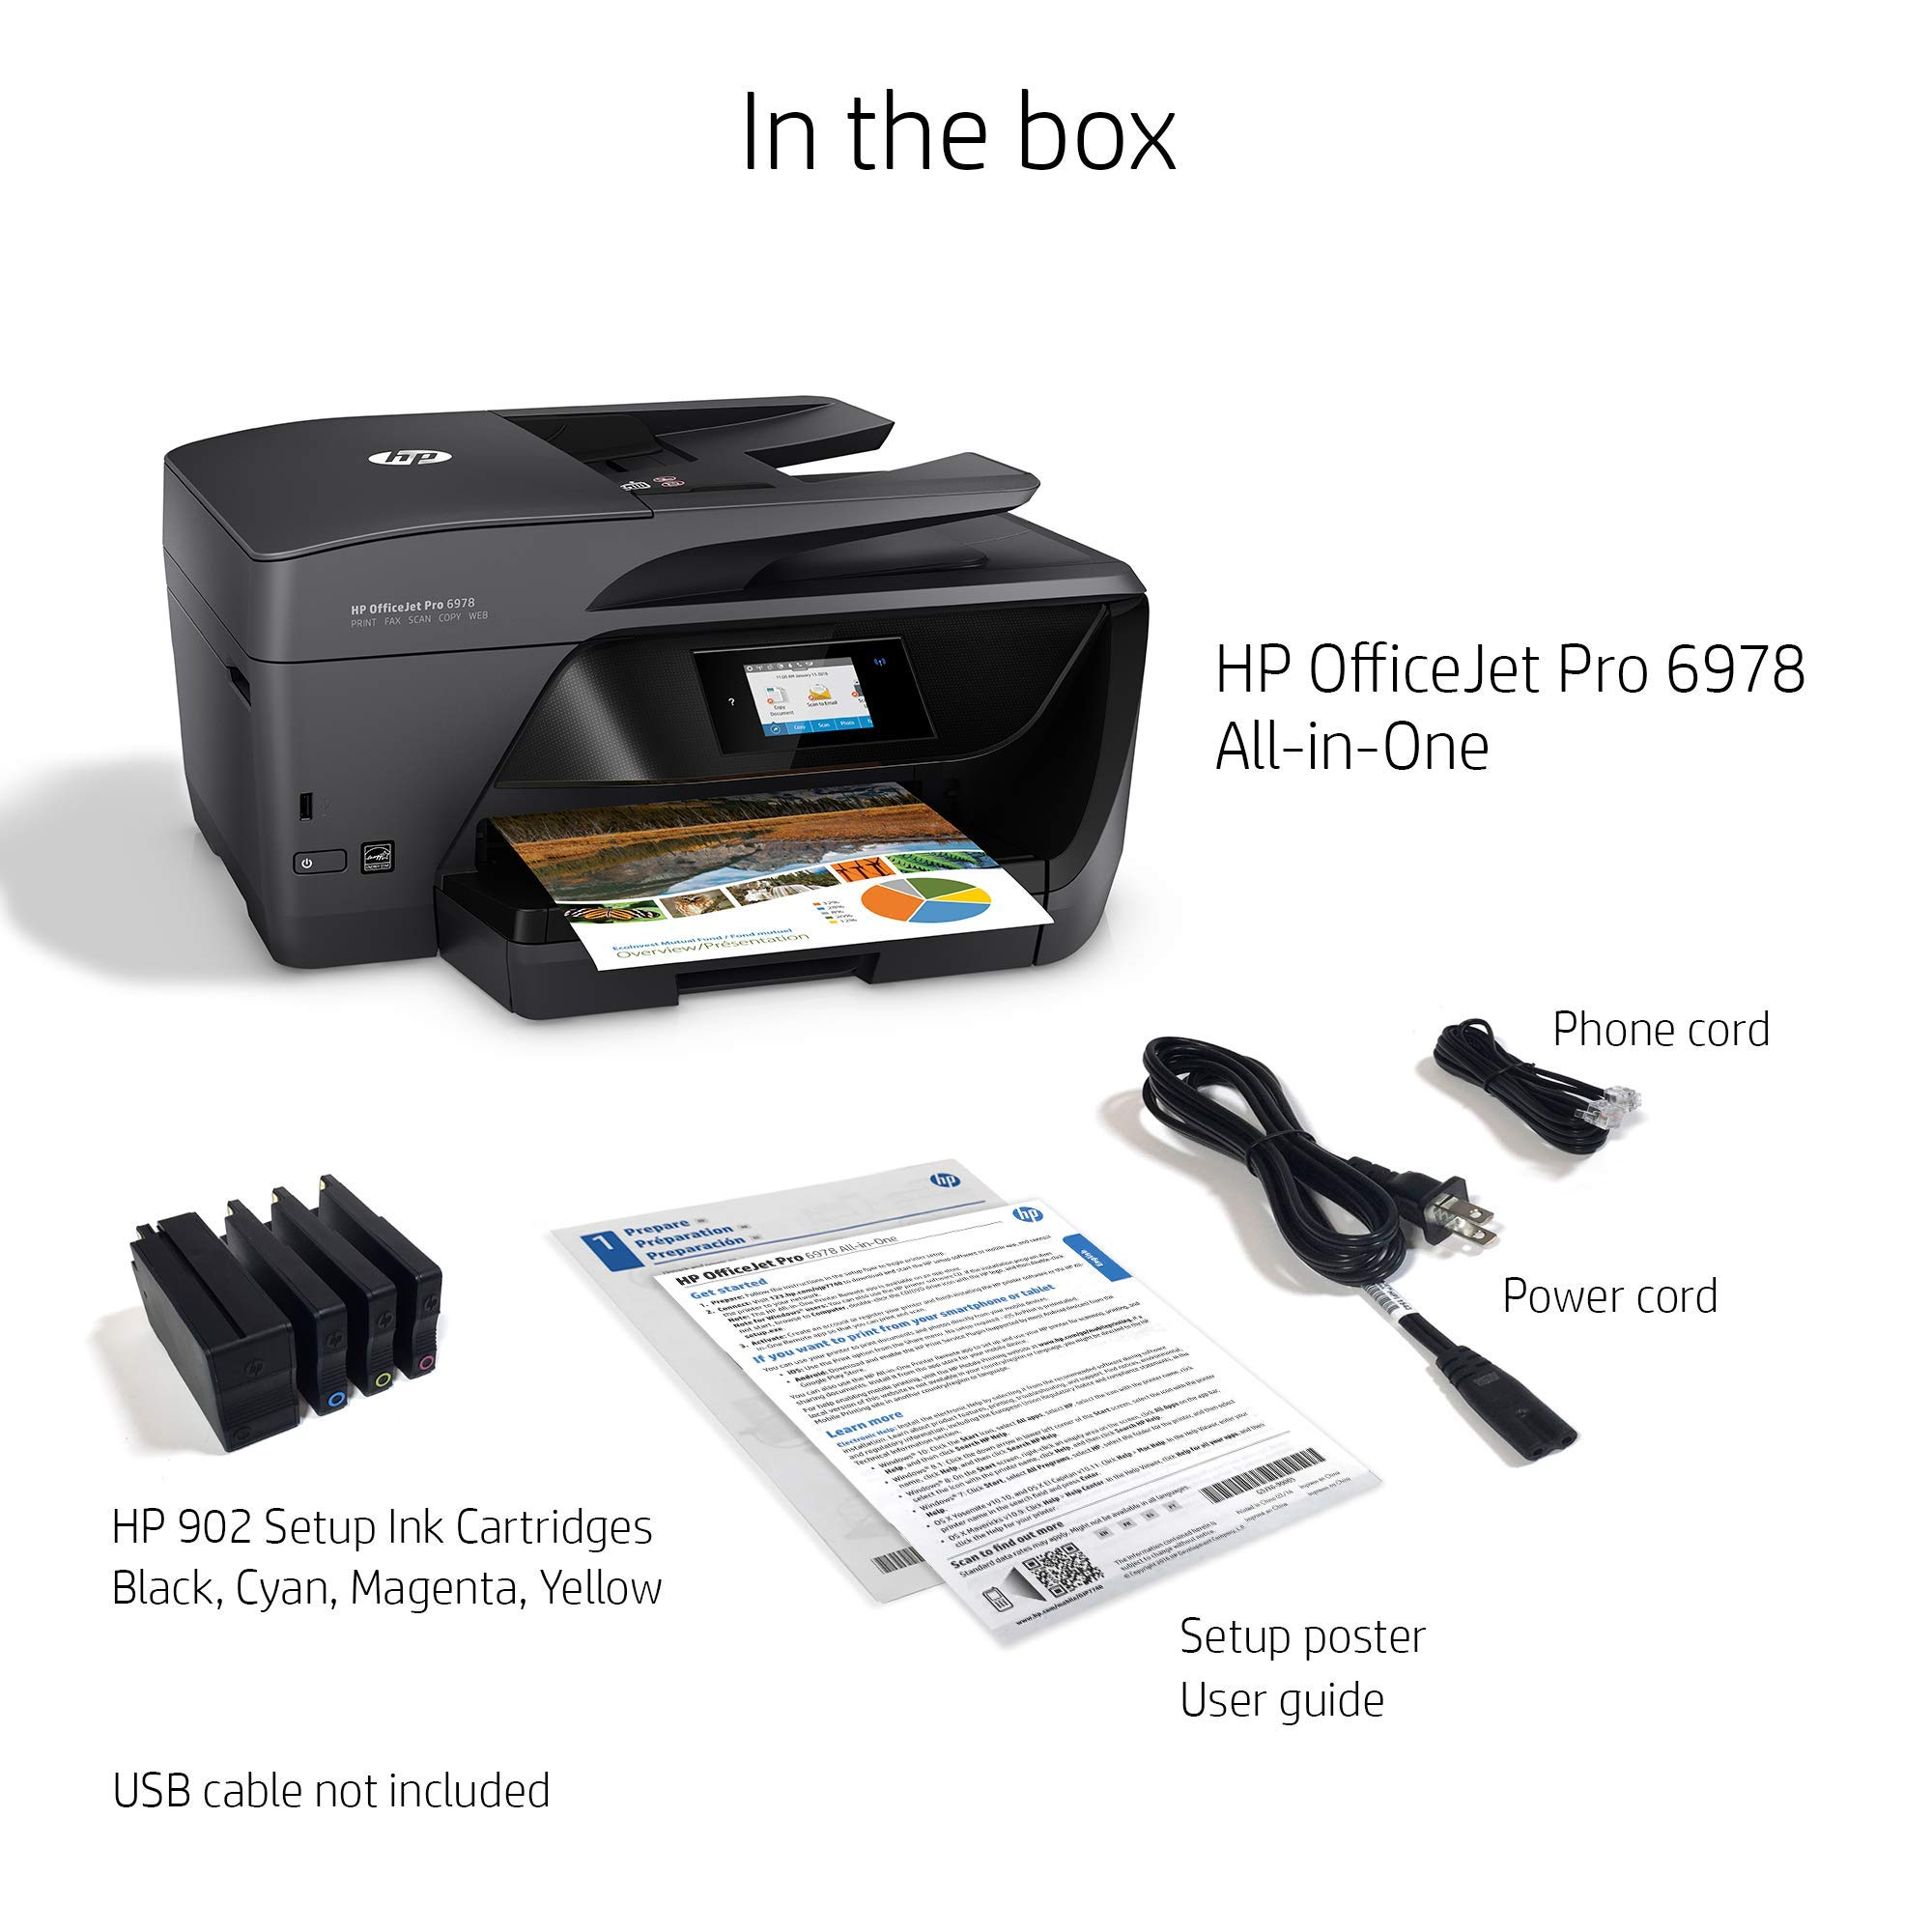 HP OfficeJet Pro 6978 All-in-One Wireless Printer with Mobile Printing, HP Instant Ink & Amazon Dash Replenishment Ready (T0F29A) (Renewed) by HP (Image #4)